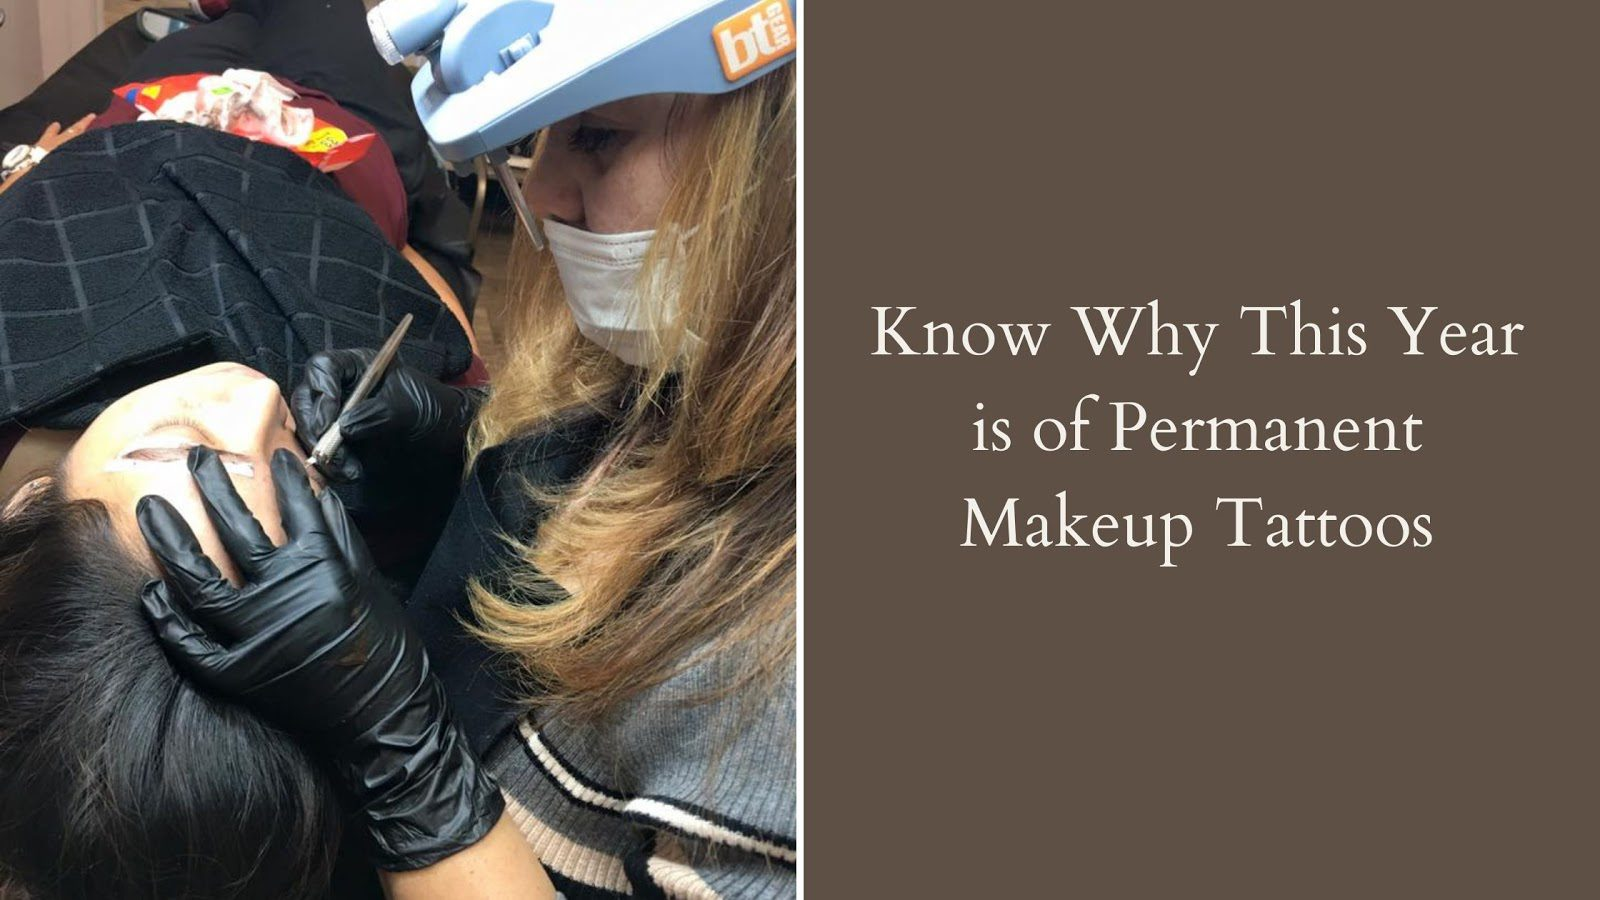 Know Why This Year is of Permanent Makeup Tattoos